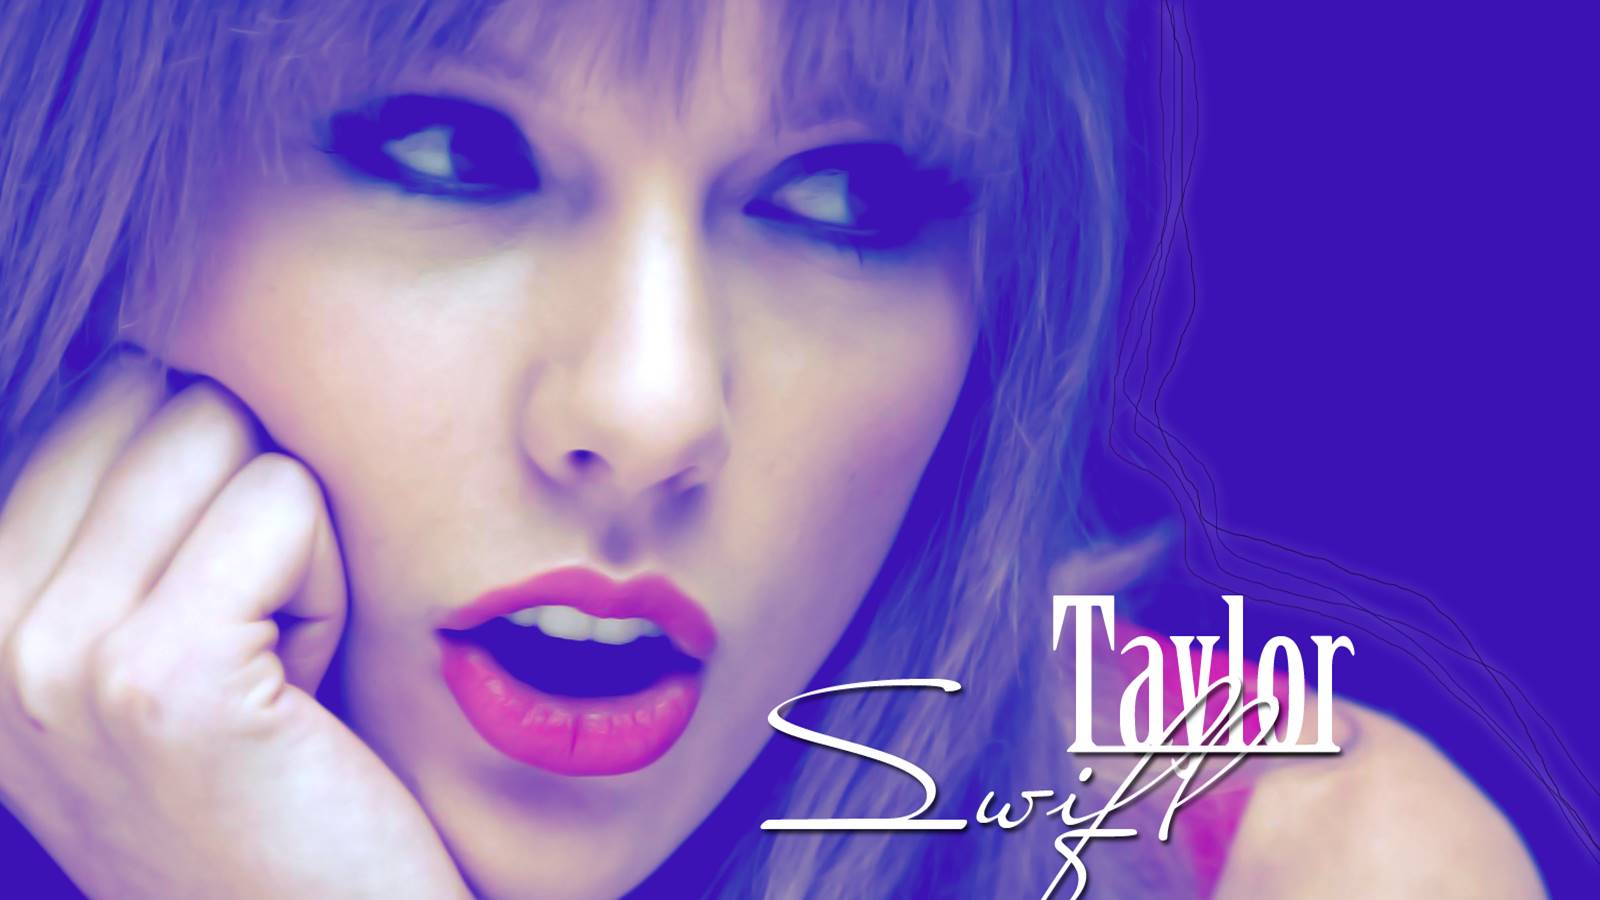 Taylor Swift 2017 Wallpapers 1600x900